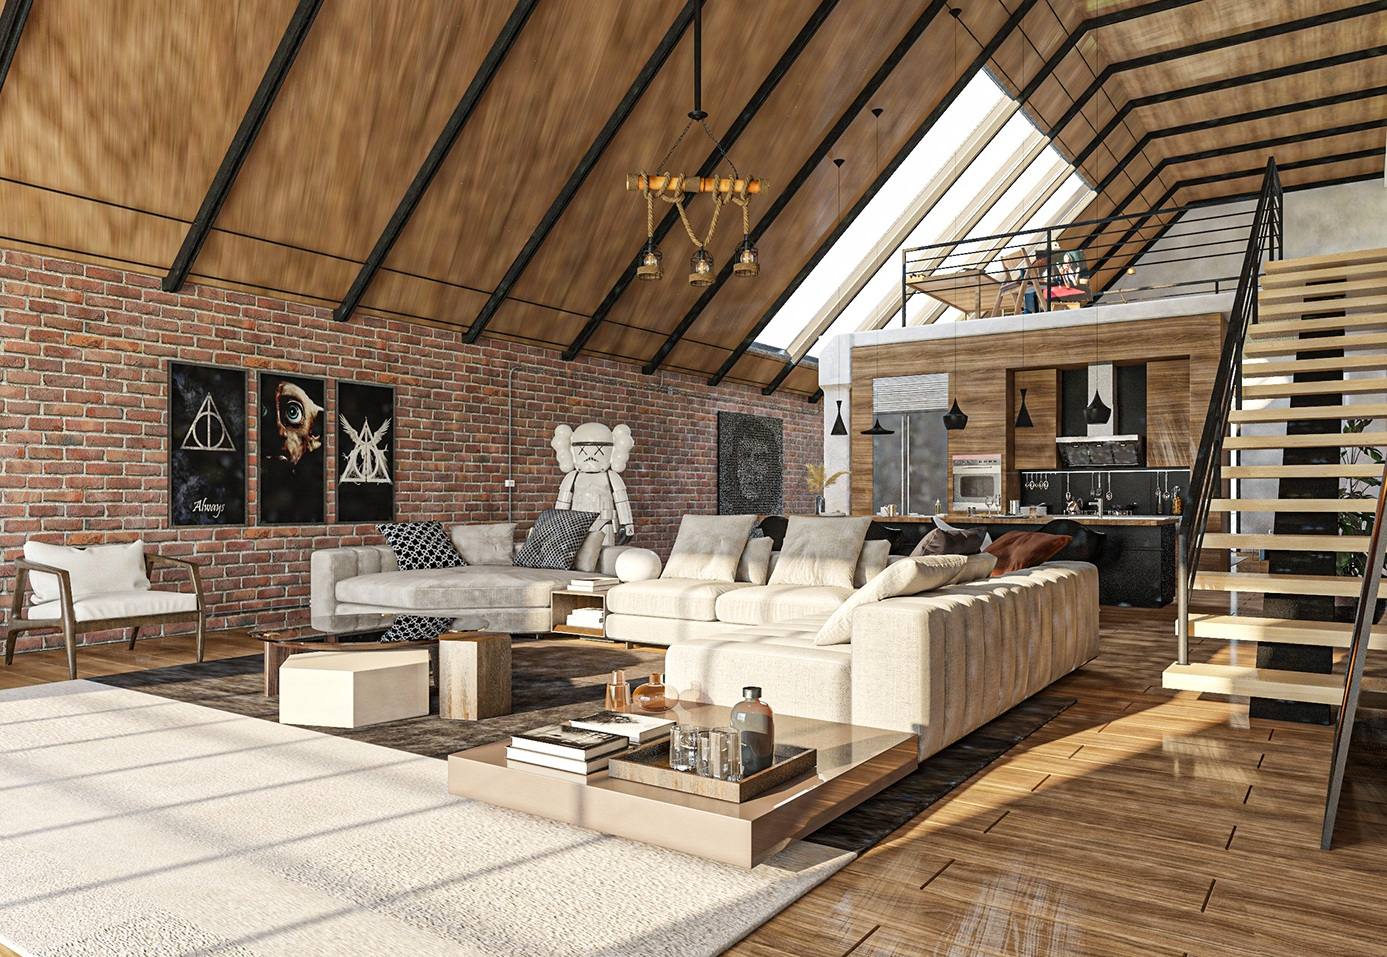 Cool And Better Use Of Space- Loft Room Ideas